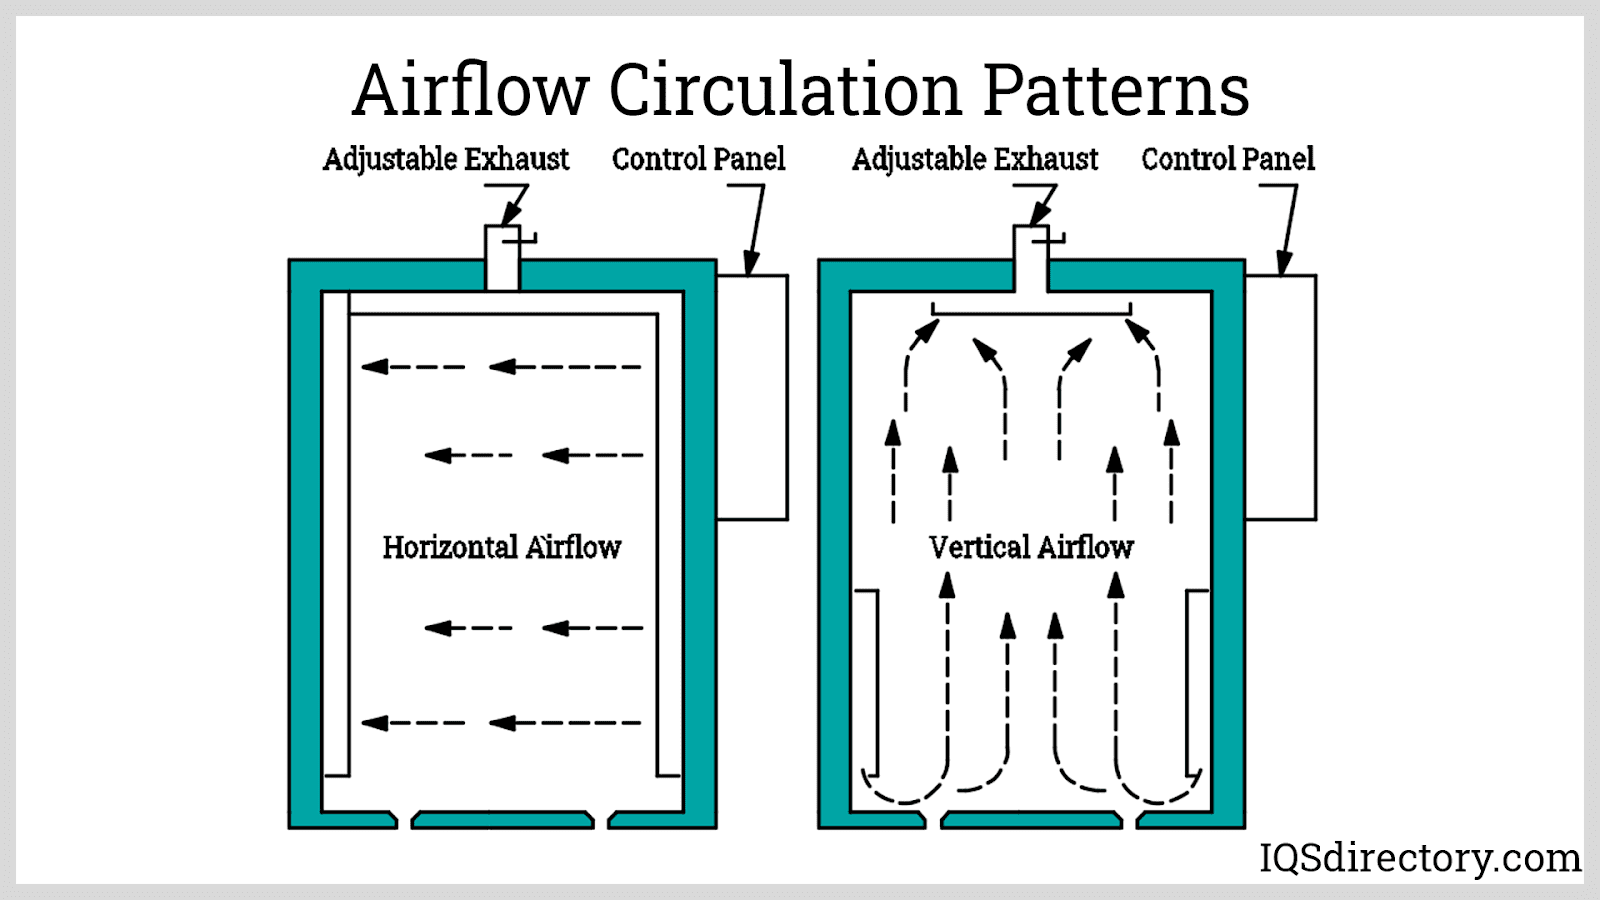 Airflow Circulation Patterns